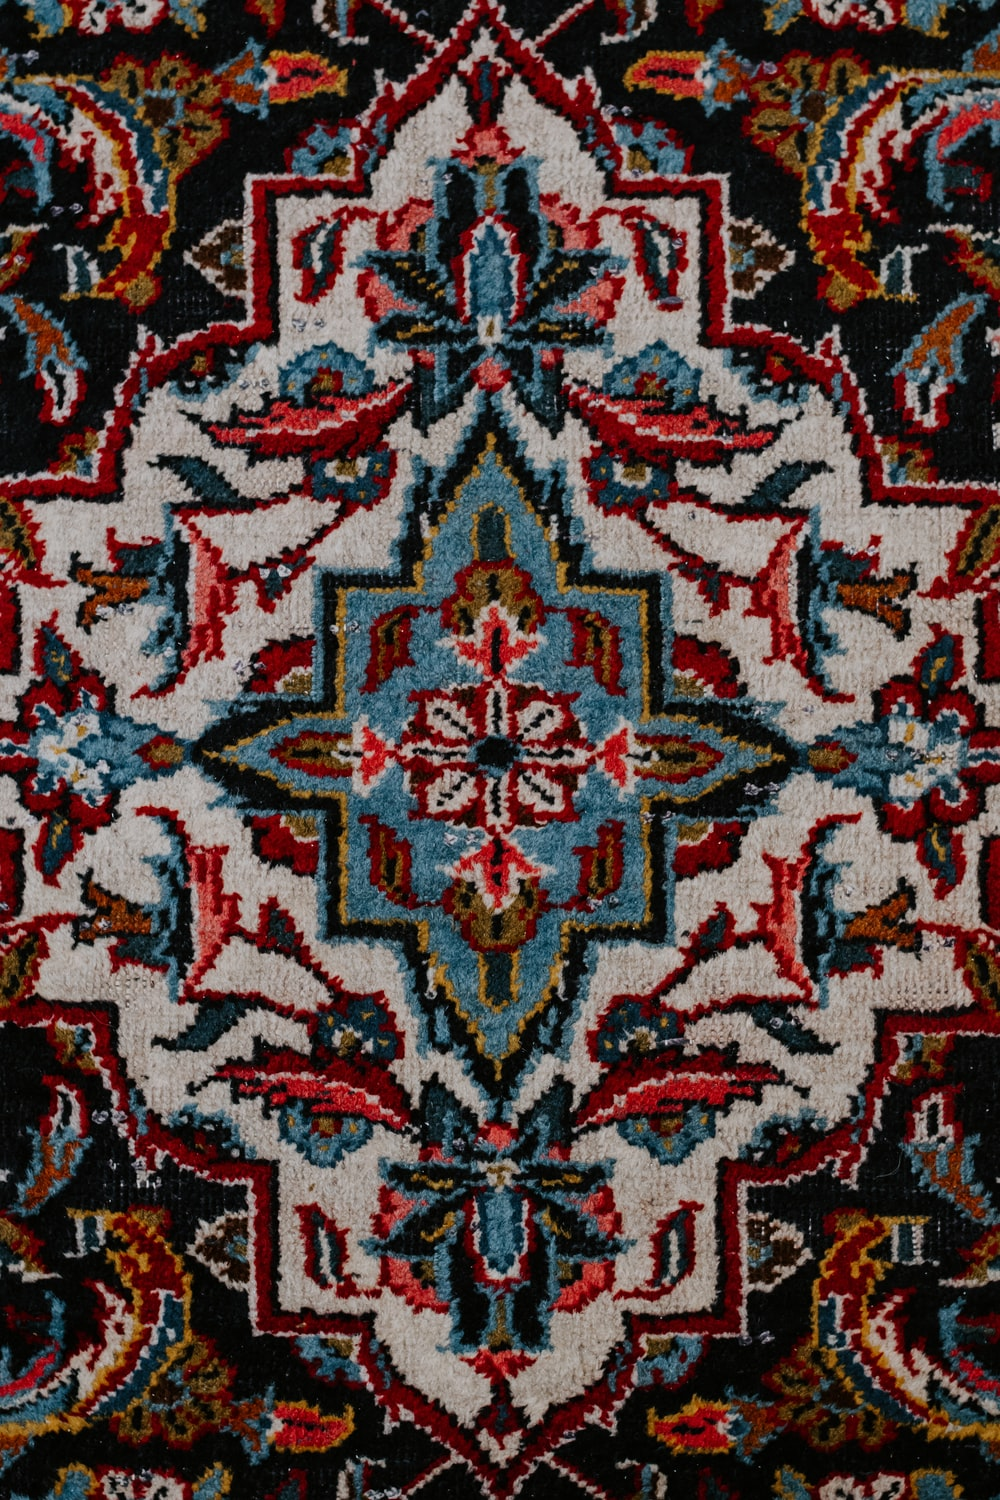 500 Rug Pictures Hd Download Free Images On Unsplash